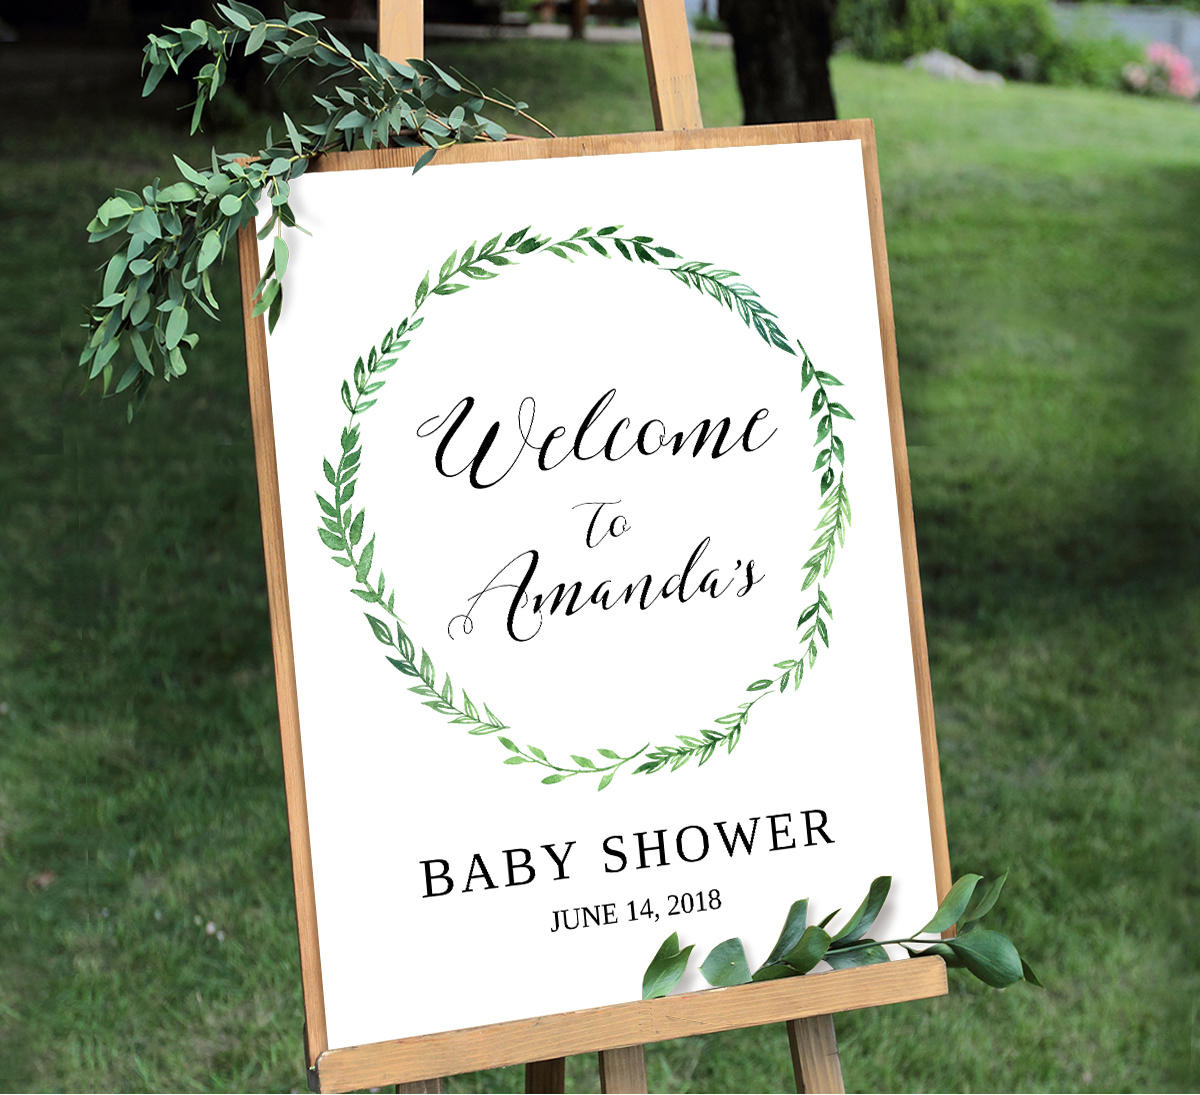 Adorable etsy finds for the next baby shower you host southern living 2 of 7 etsy filmwisefo